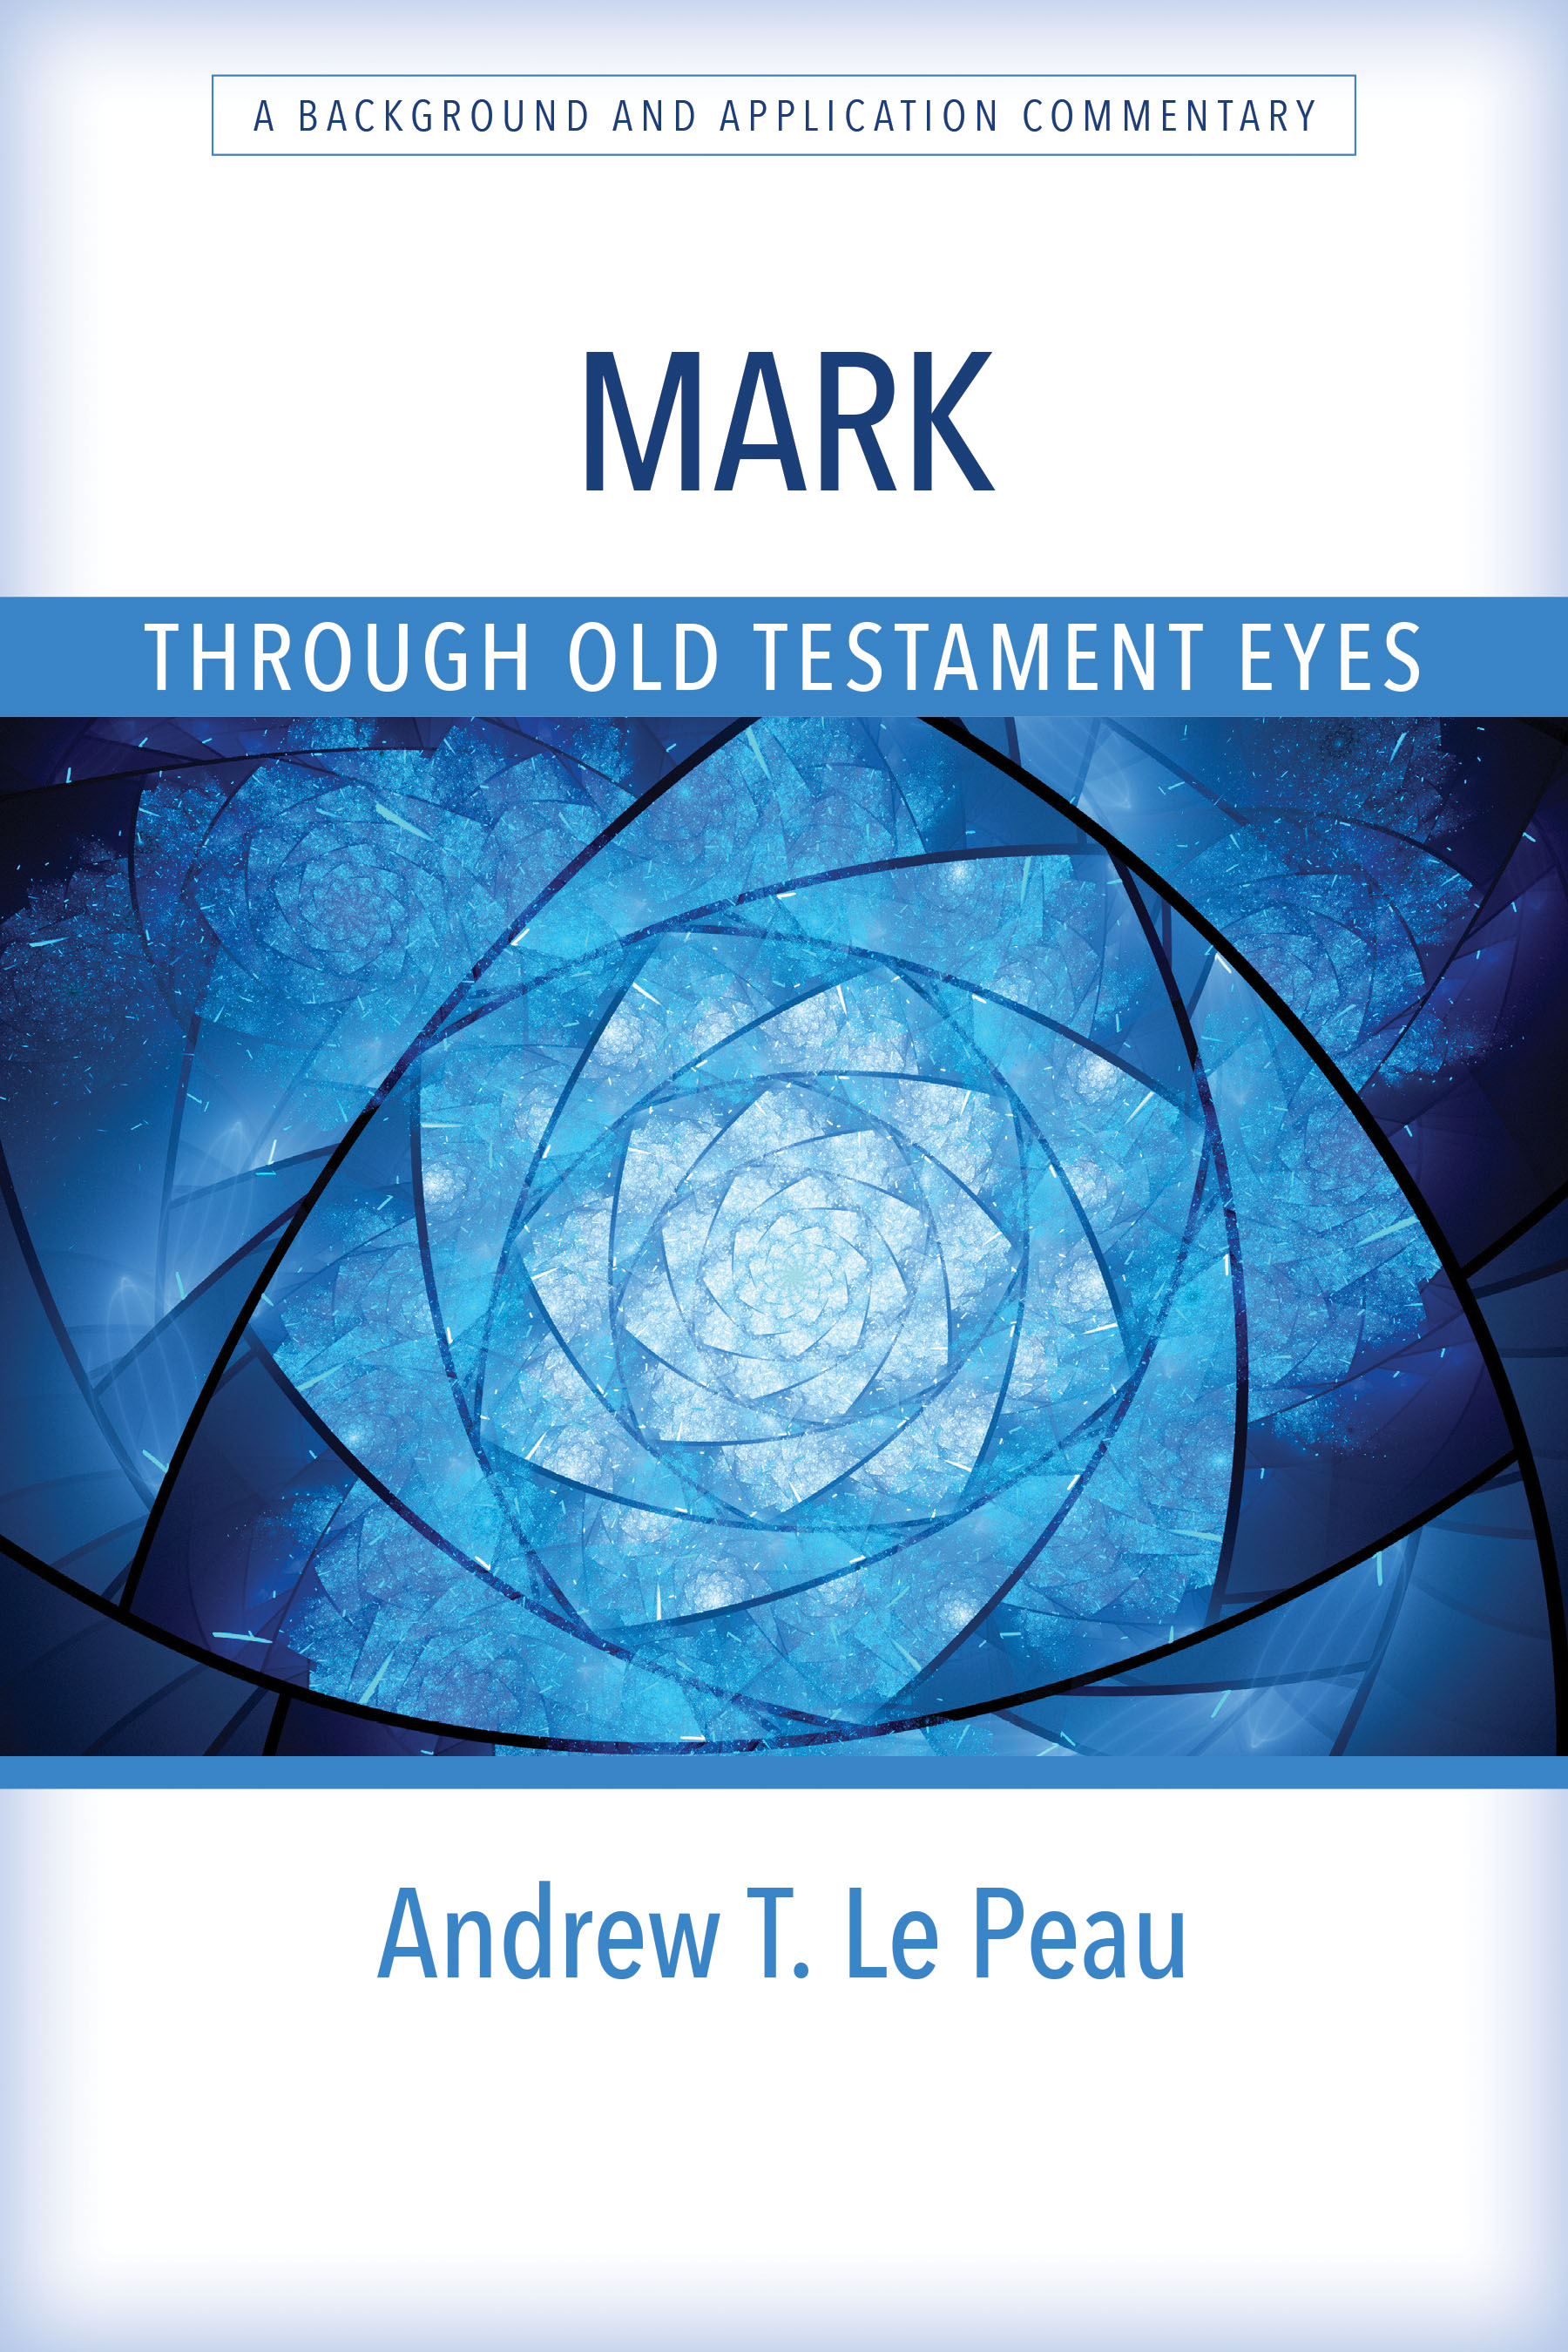 i-38e8387eb754b58c1af5659b7a367367-Mark Through Old Testament Eyes.jpg